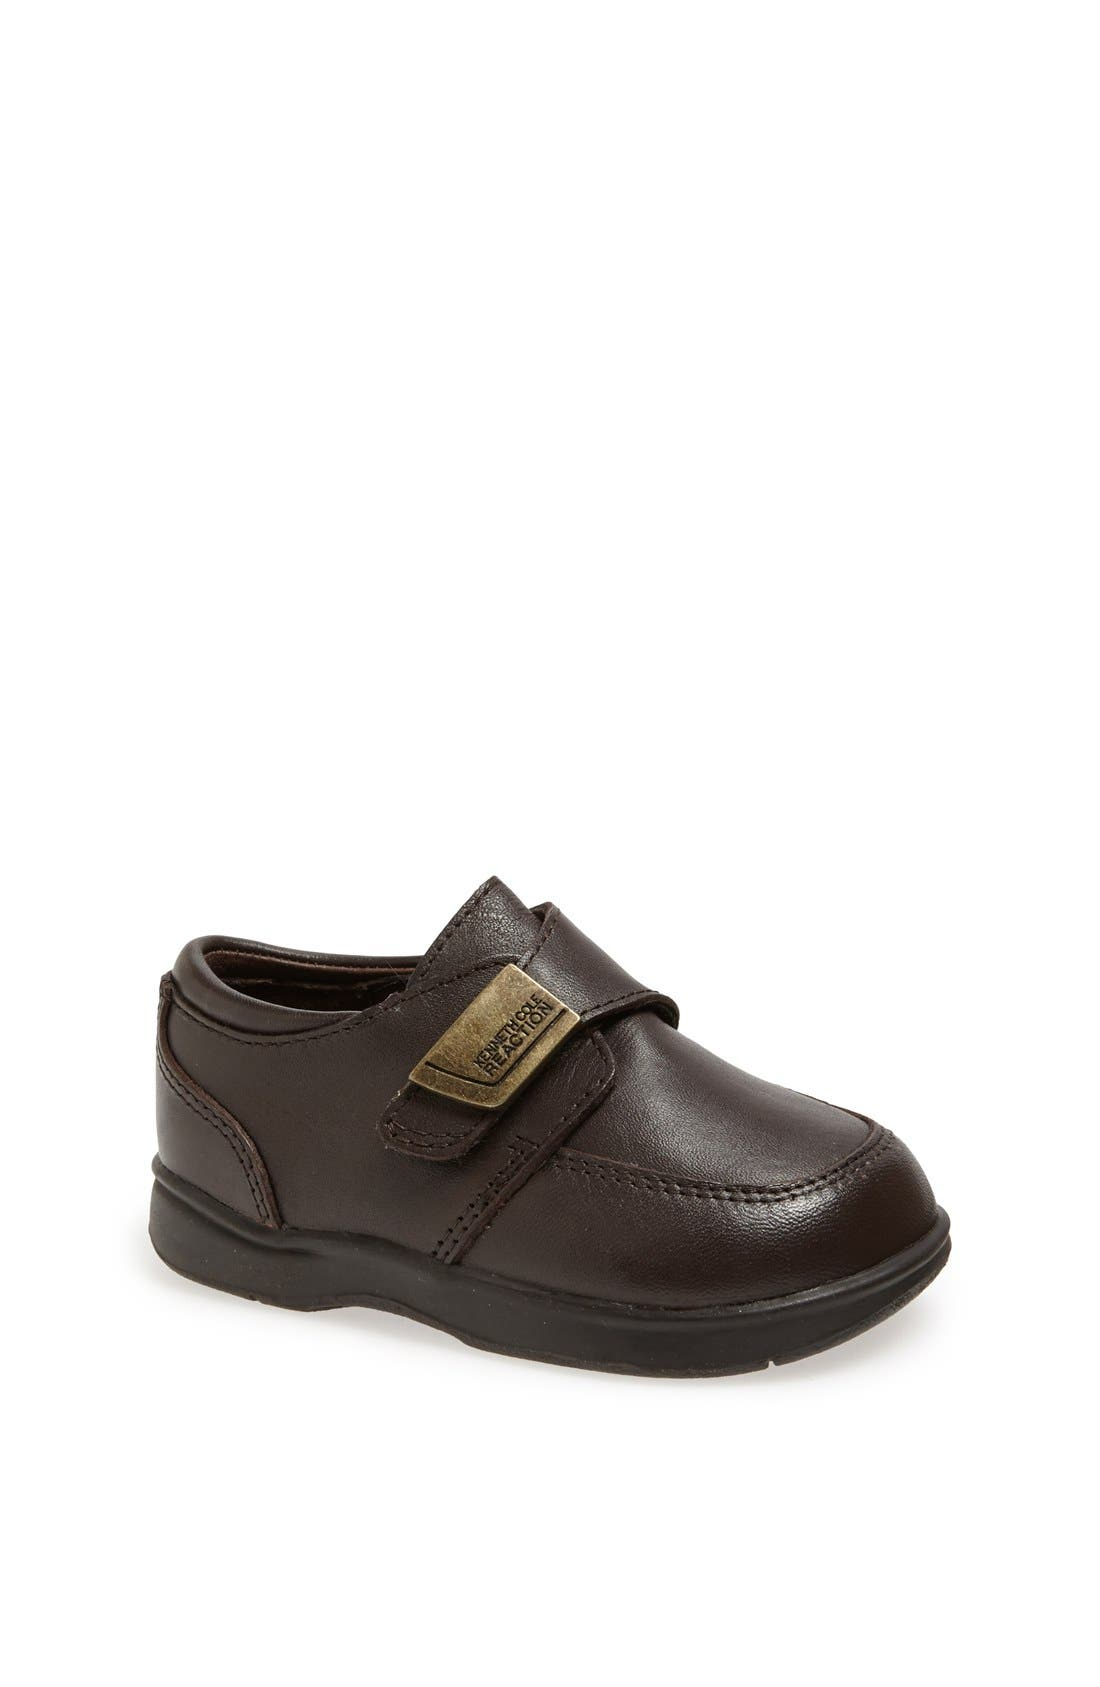 Alternate Image 1 Selected - Reaction Kenneth Cole 'Tiny Flex' Slip-On (Baby, Walker & Toddler)